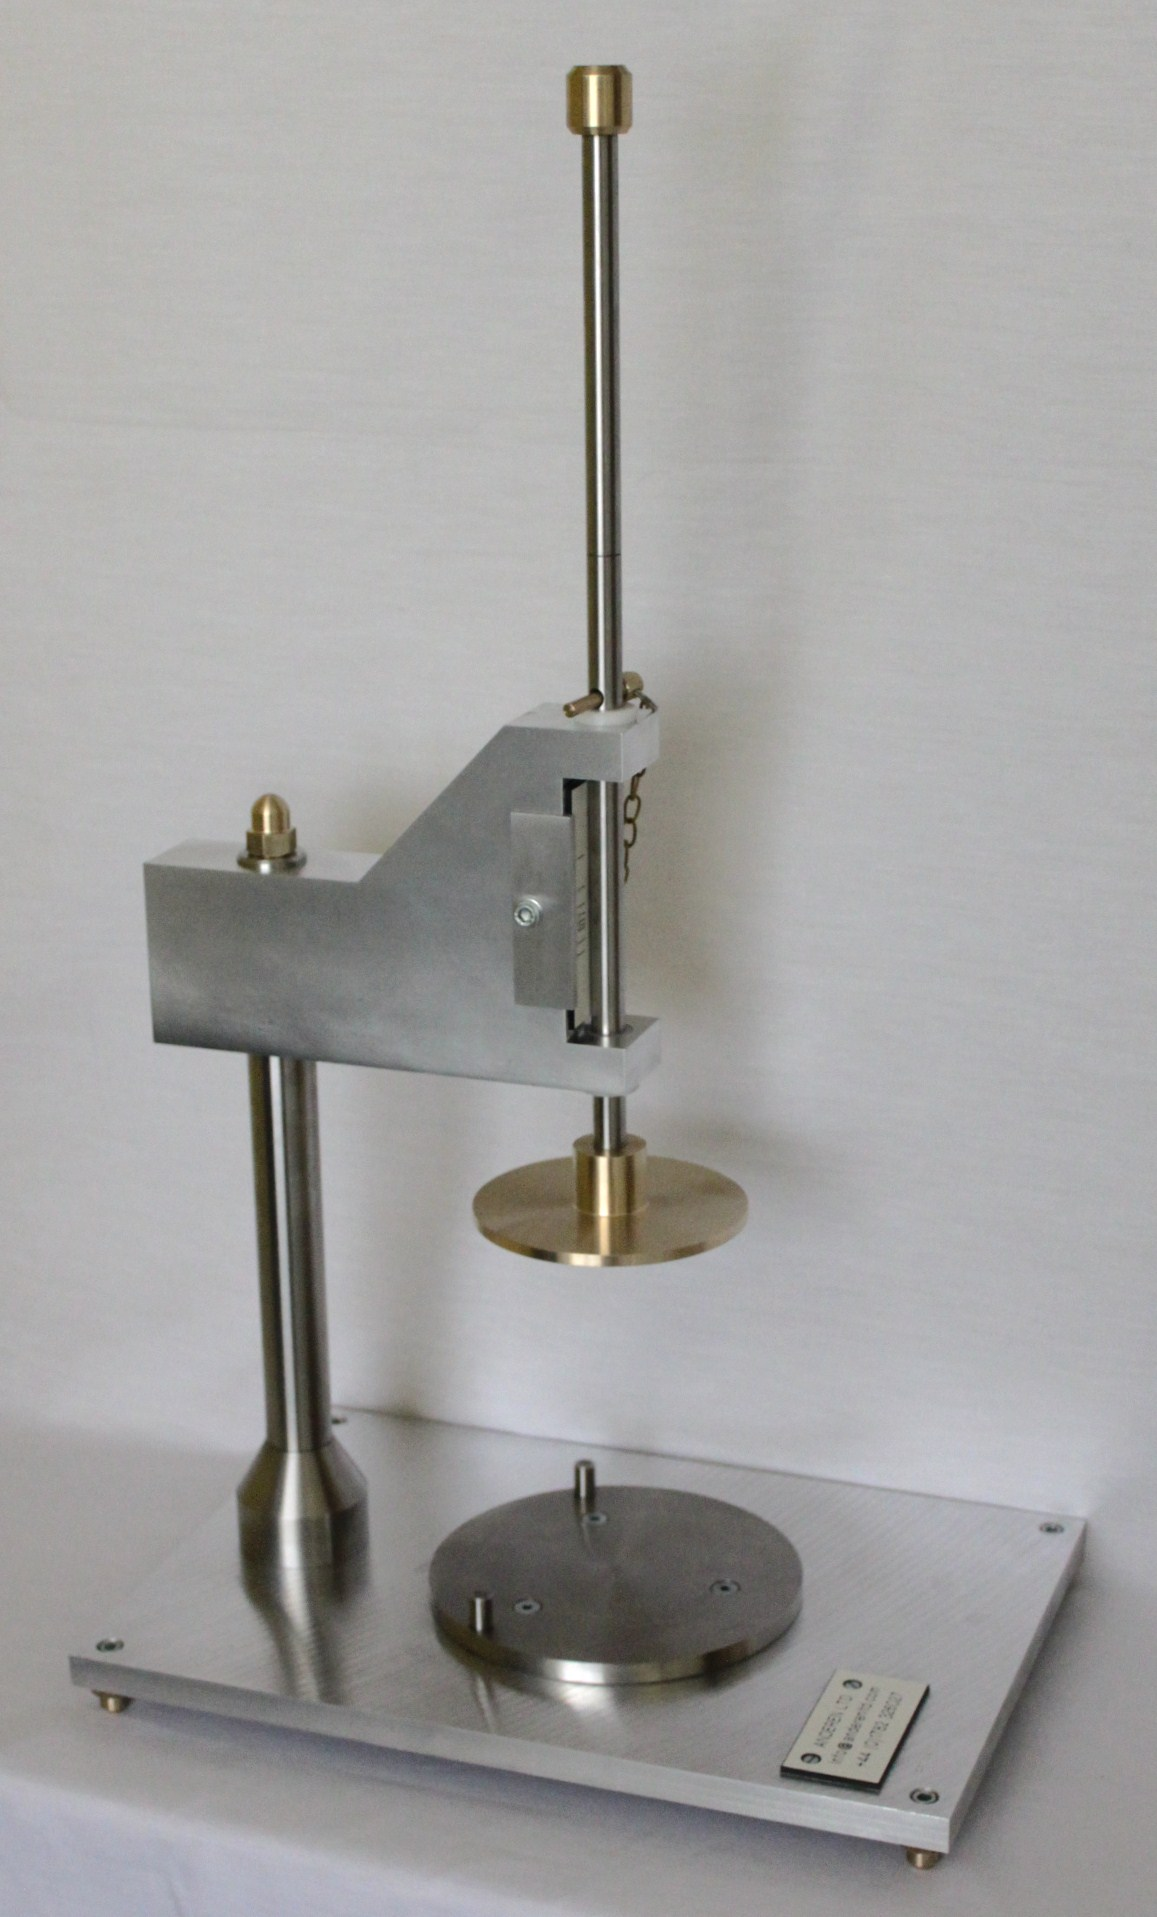 A plasticity testing device, a weighted plate falls and deforms a plastic specimen